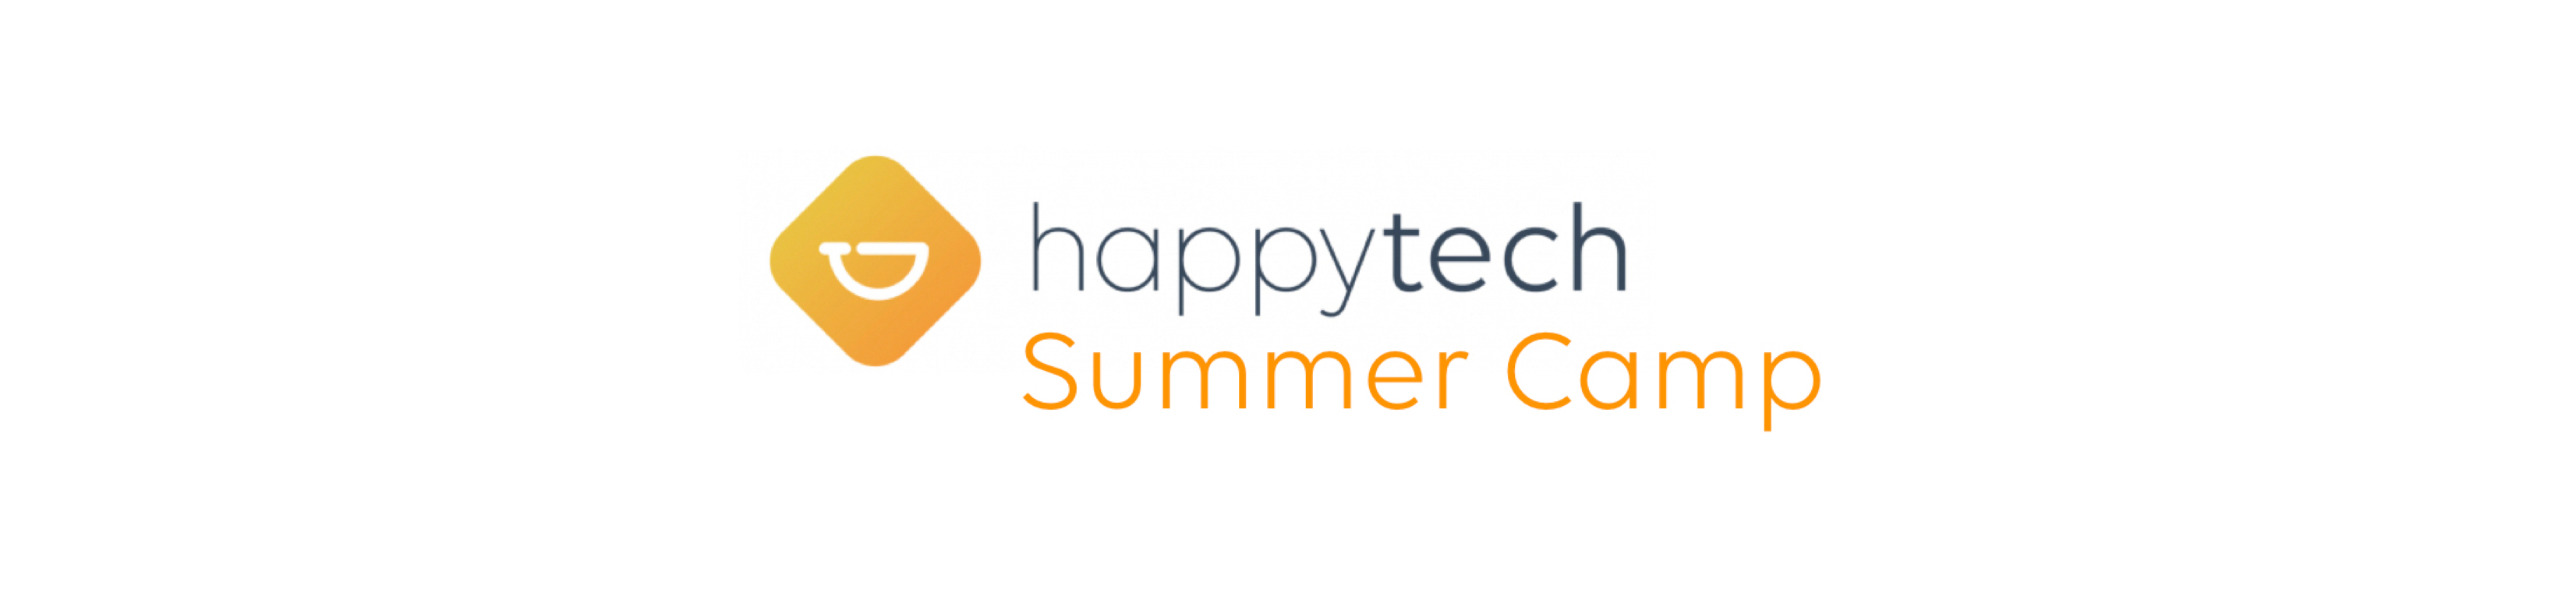 Rendez-vous à Happytech Summer Camp !